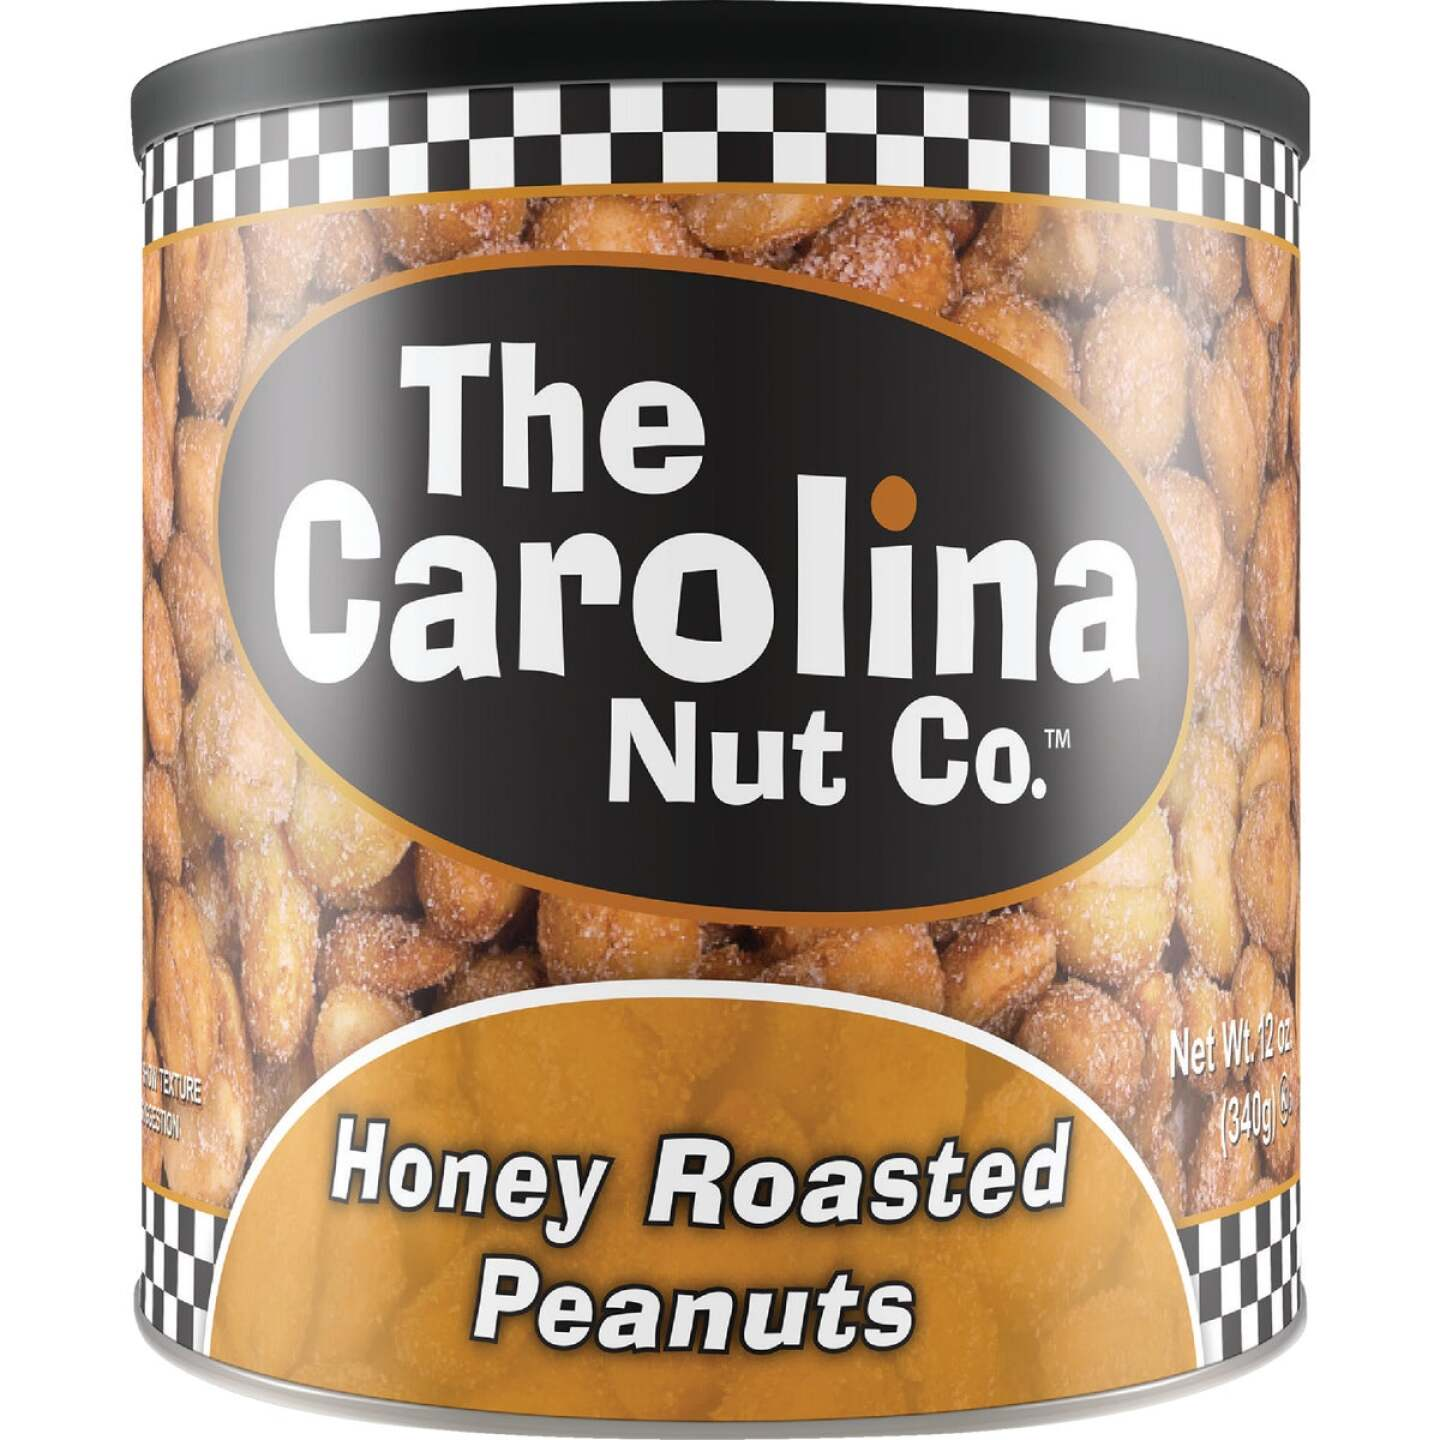 The Carolina Nut Company 12 Oz. Honey Roasted Peanuts Image 1